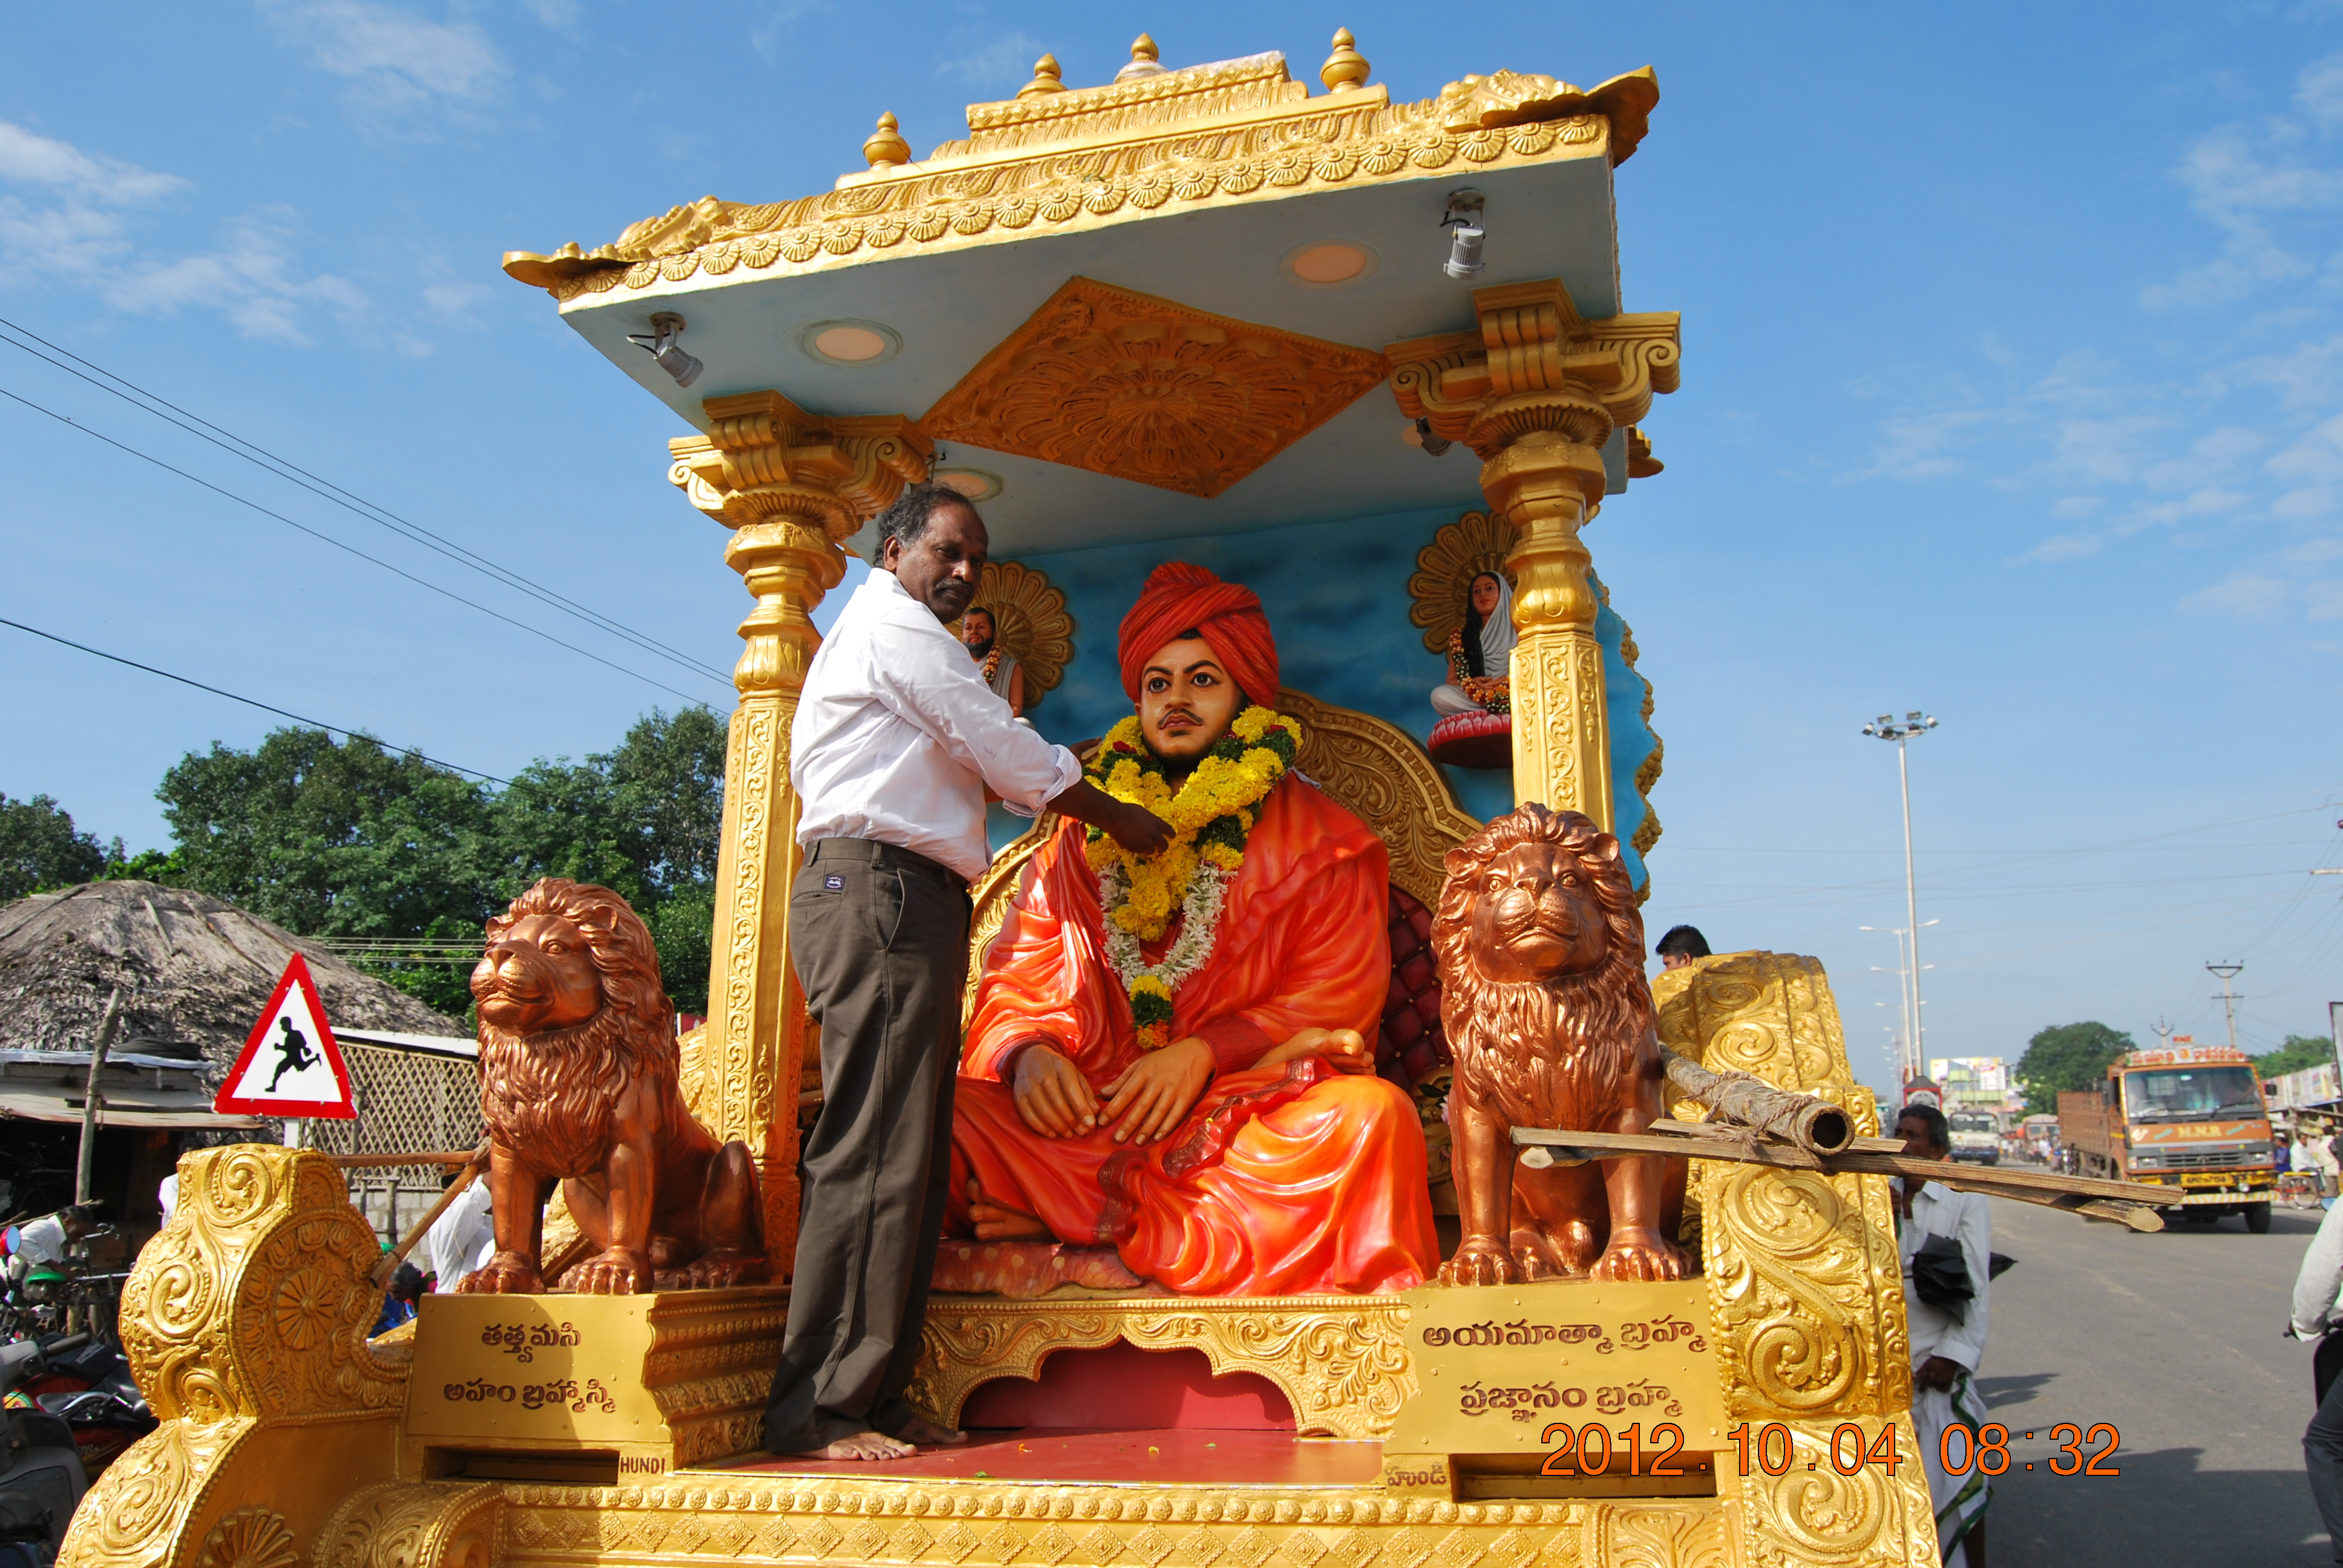 Sri G Ravindra babu garlanding the image of Swamiji